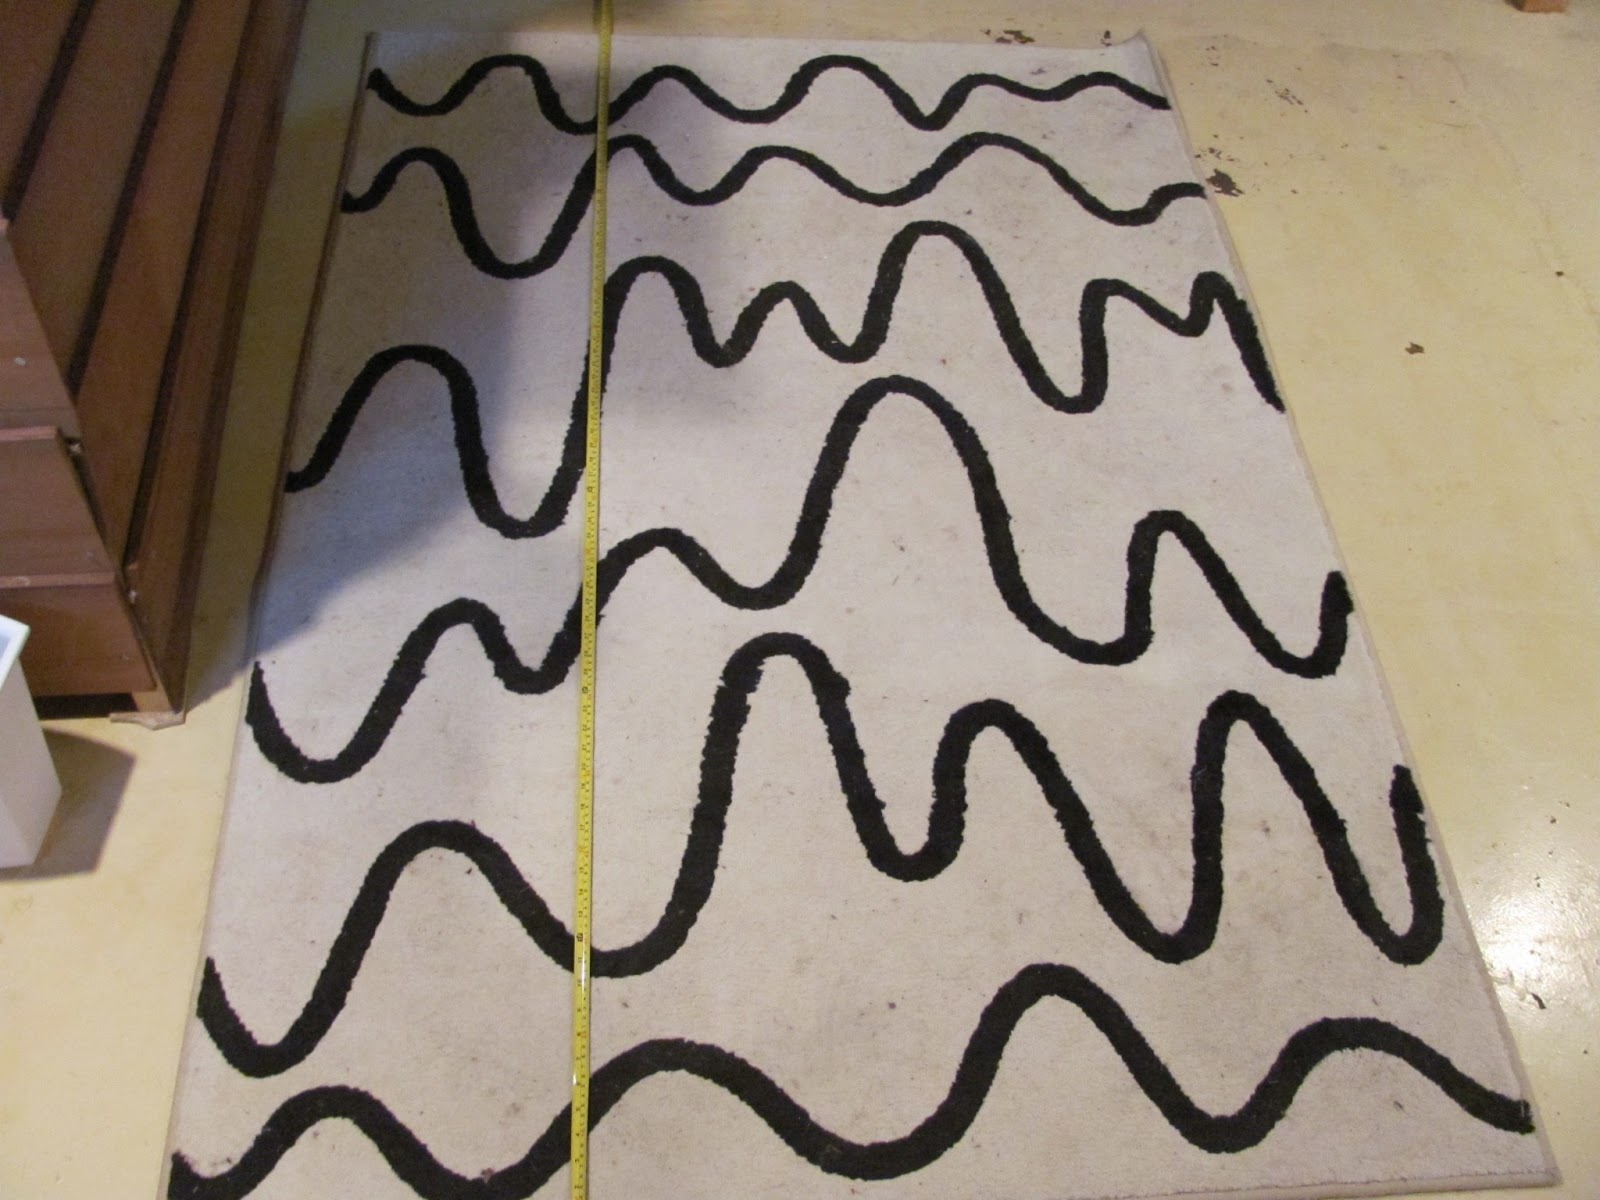 Measurement shot of a white rug with random, curvy black bars